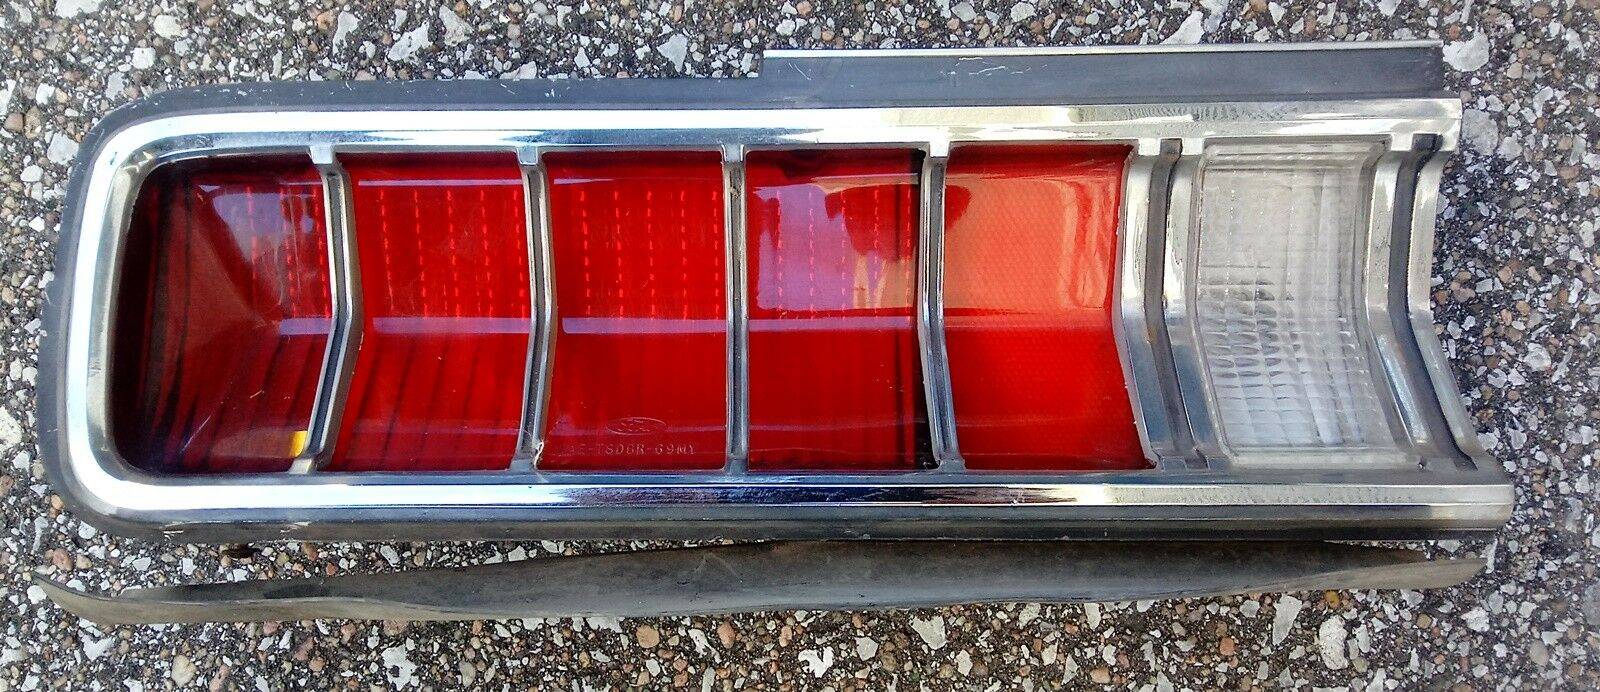 Used Mercury Monterey Tail Lights For Sale 1950 1969 Marquis Taillight Assembly Driver Side